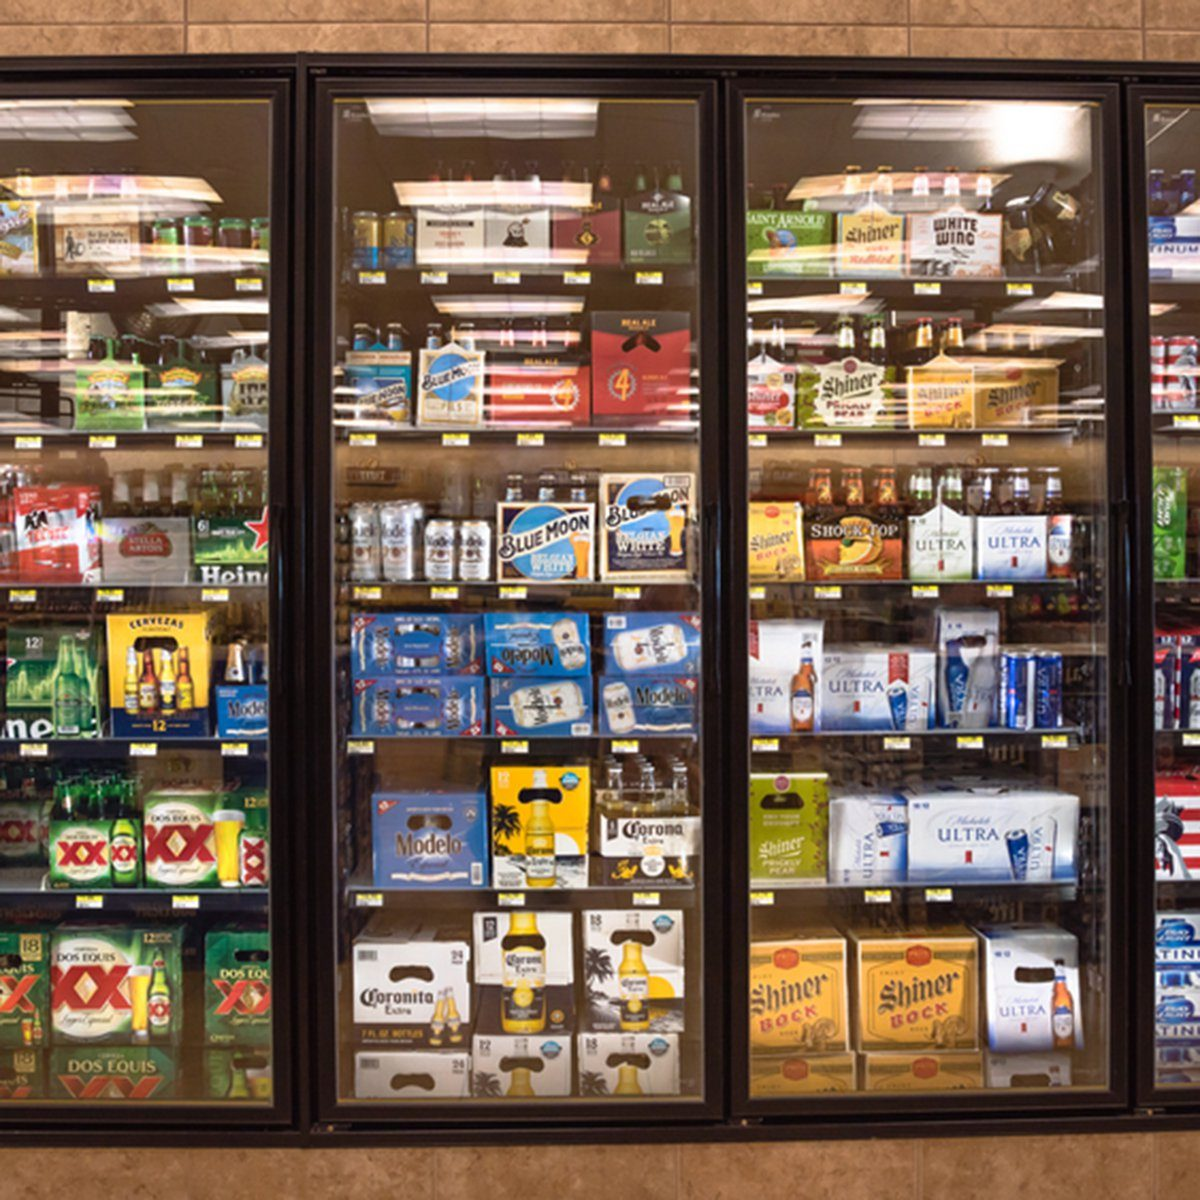 Various bottles of craft, microbrew, IPA, domestic and imported beers from around the world on shelf display in supermarket cooler.